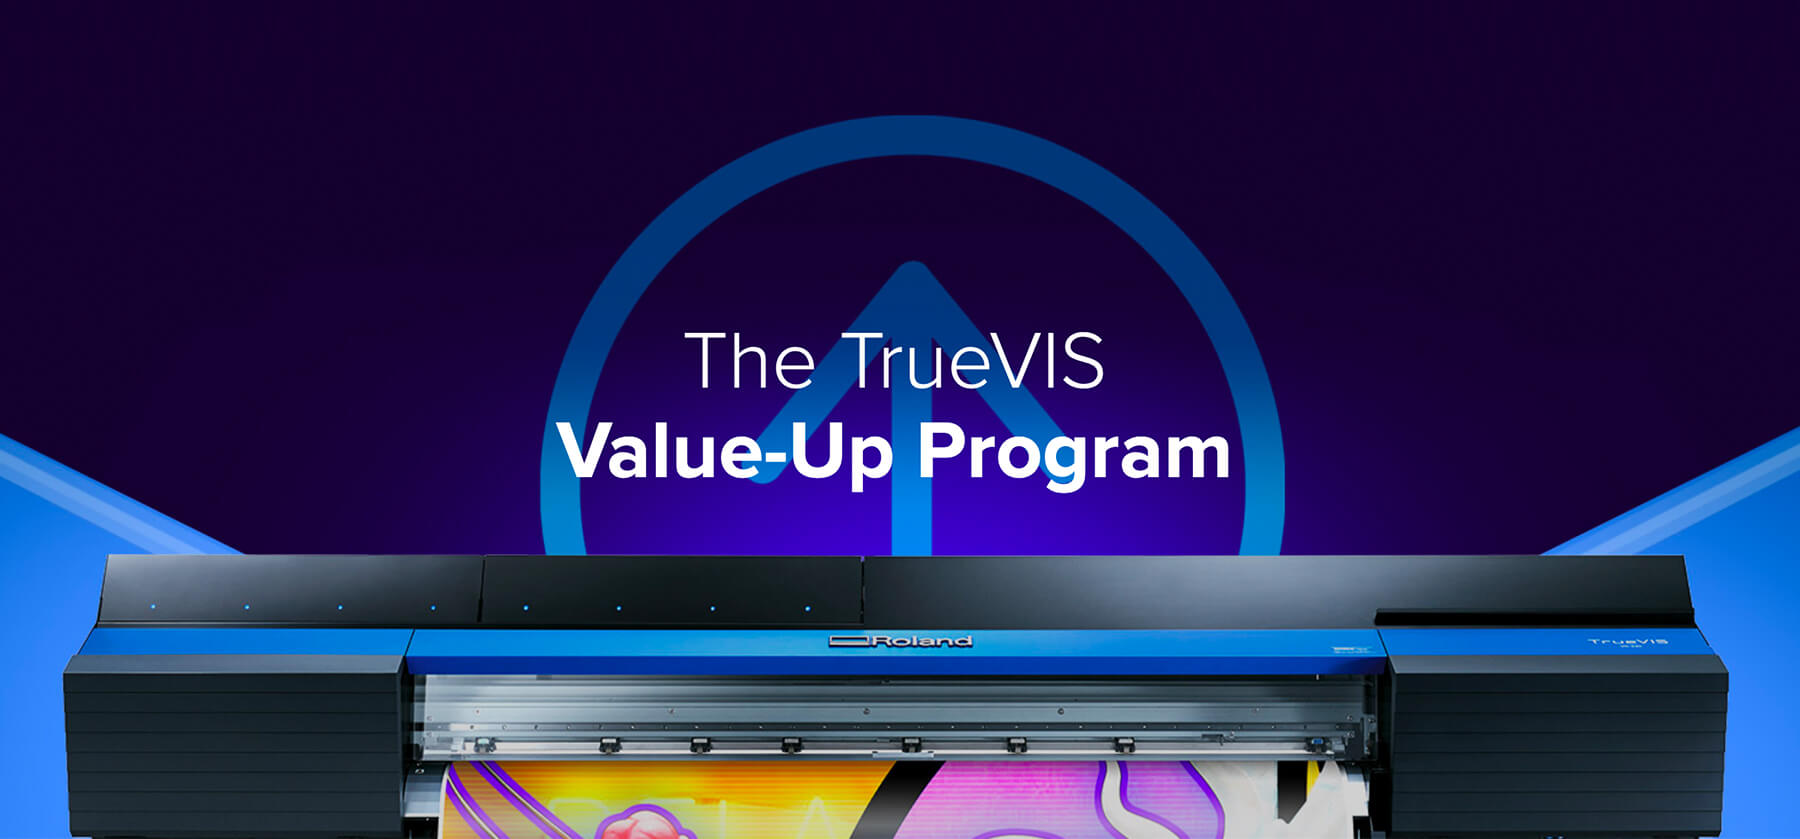 Roland DGA Launches New TrueVIS Value-Up Program